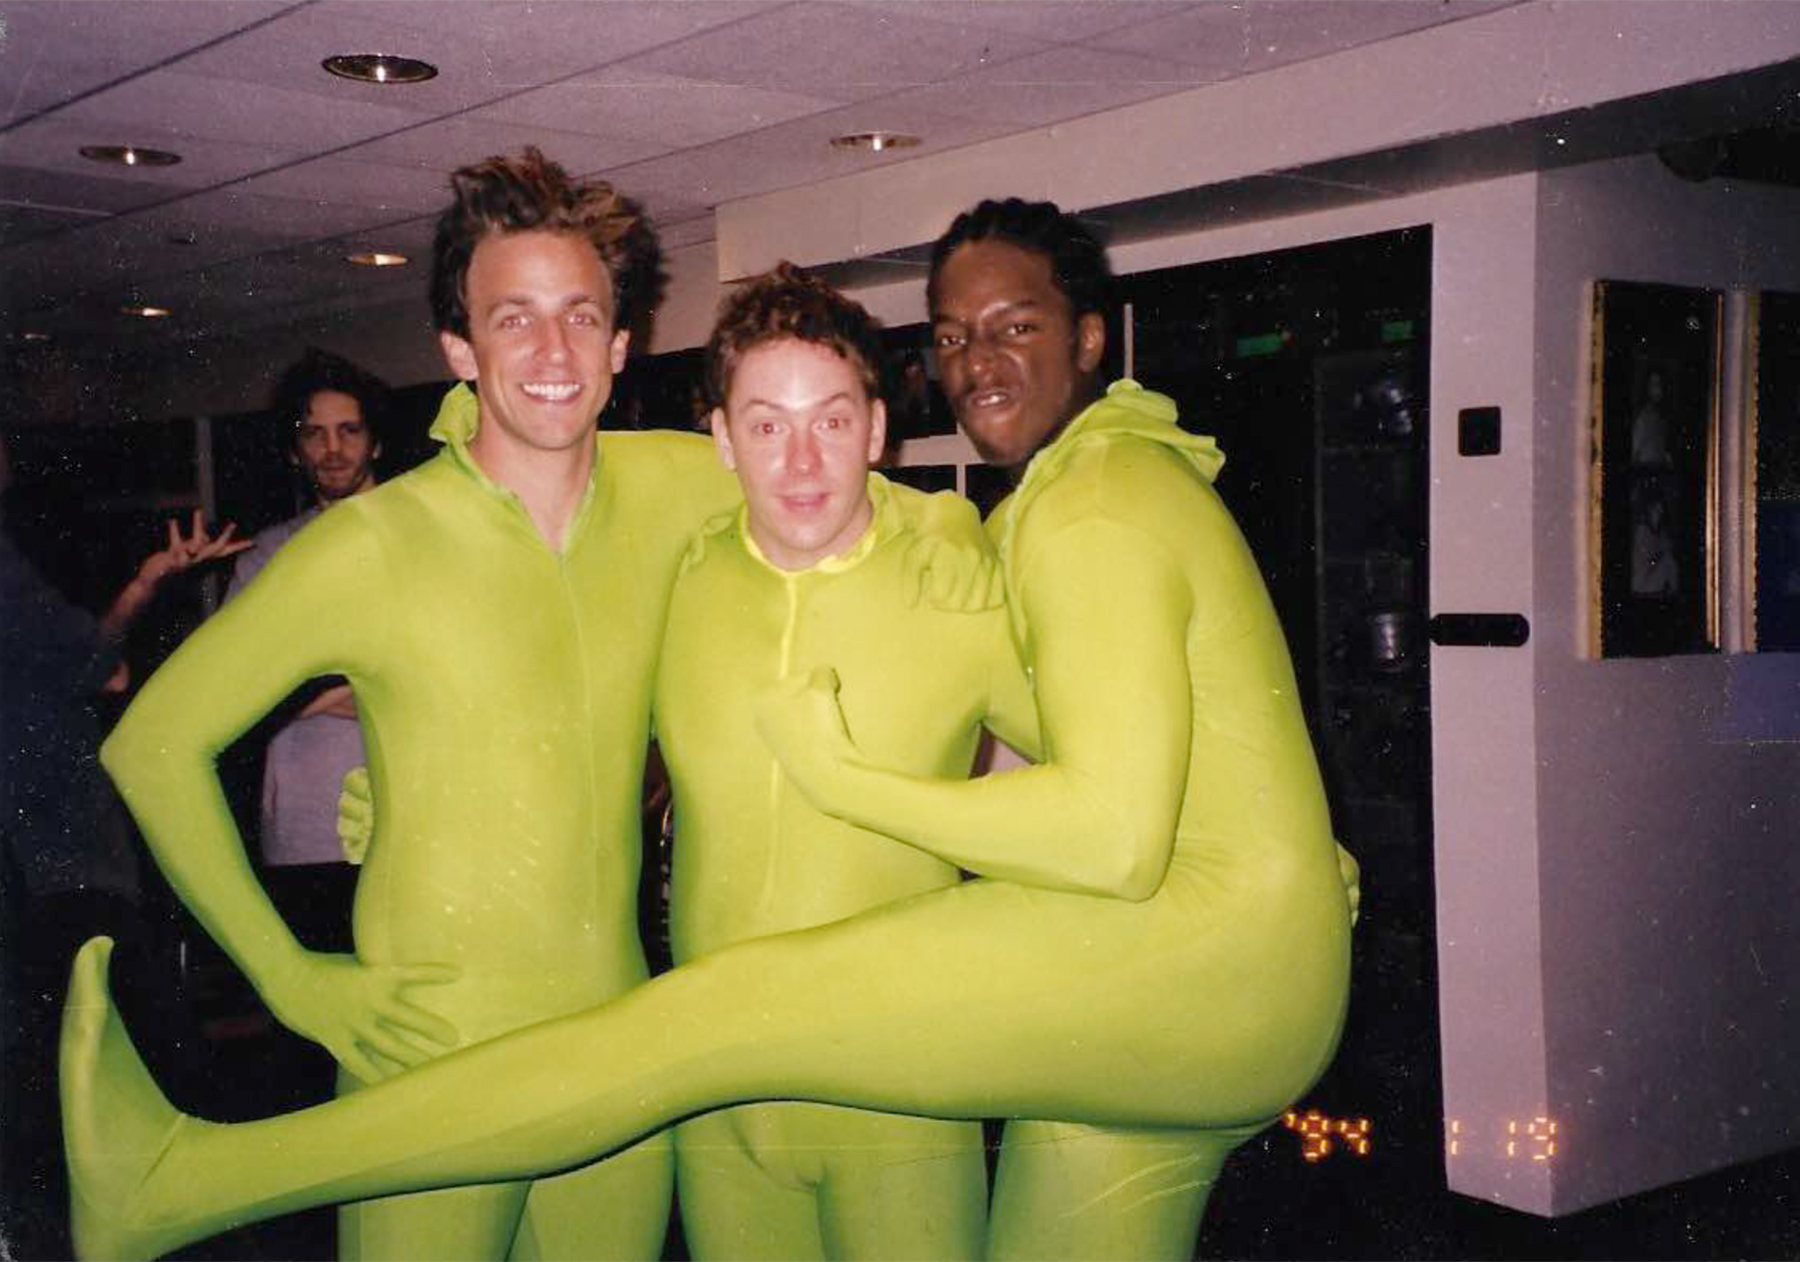 Three of the new featured players for season 27: Seth Meyers, Jeff Richards and Dean Edwards, during their first week at 'Saturday Night Live' in September of 2001.